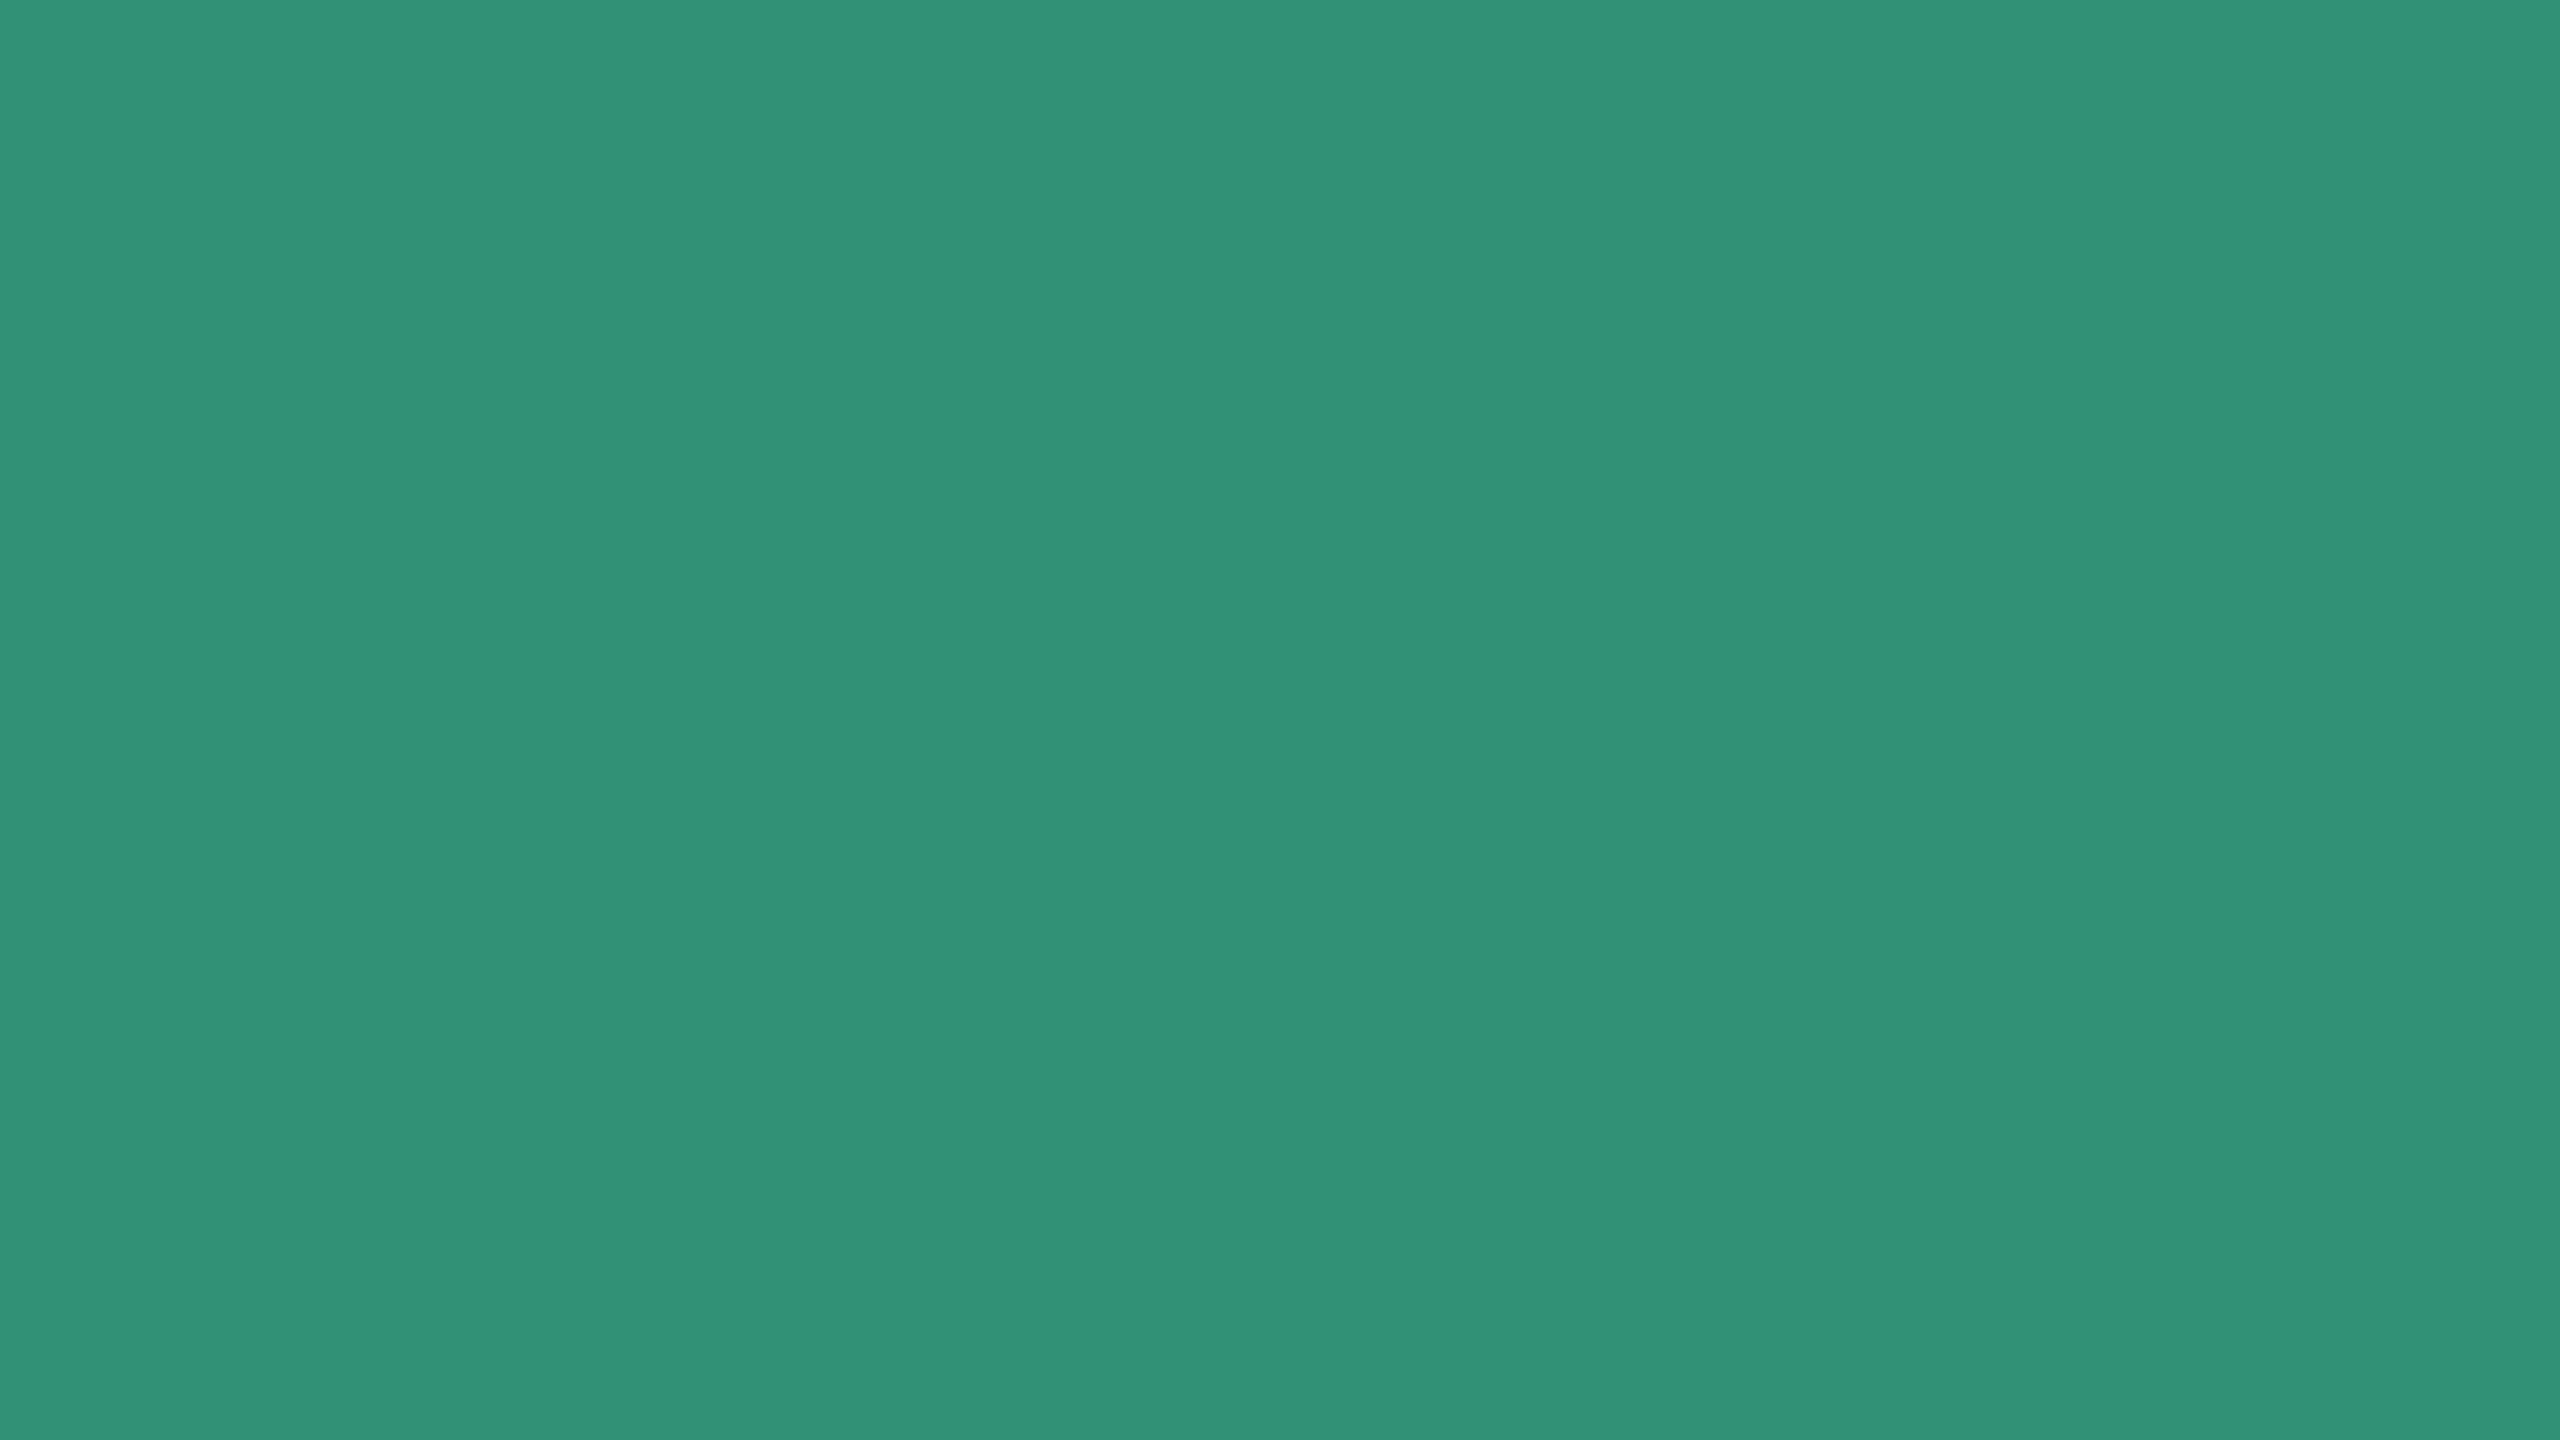 2560x1440 Illuminating Emerald Solid Color Background